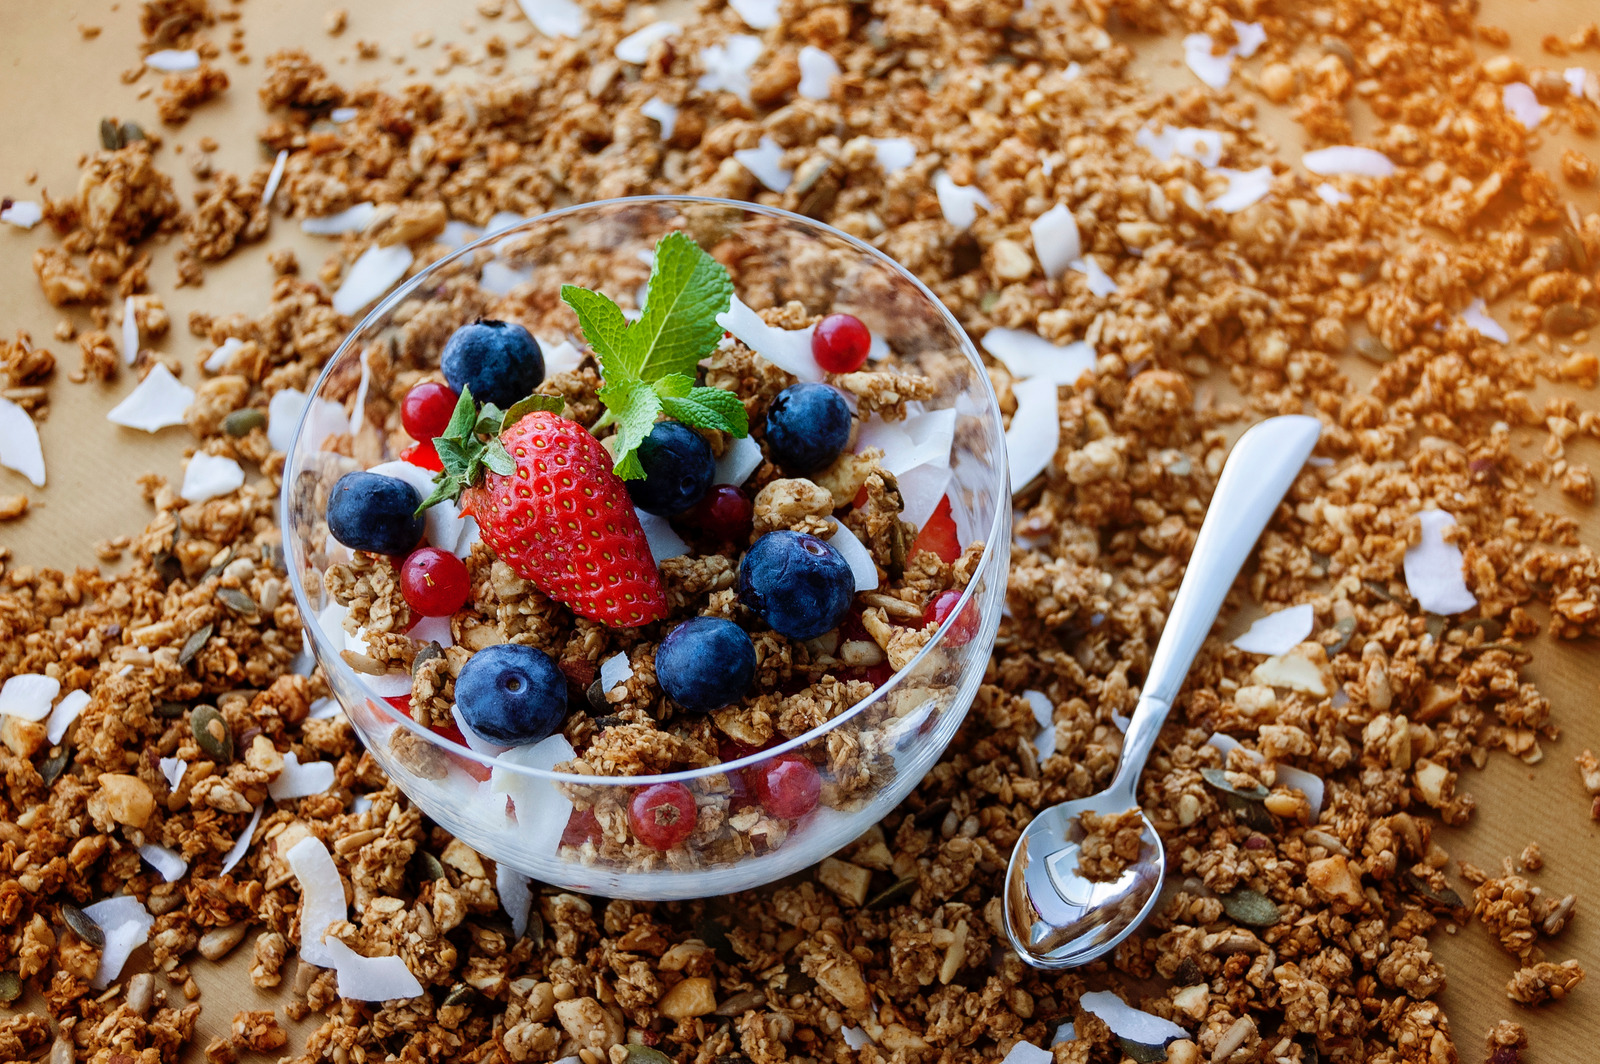 canva-strawberry-and-blueberry-on-clear-glass-bowl-MADGwLW2RCE.jpg